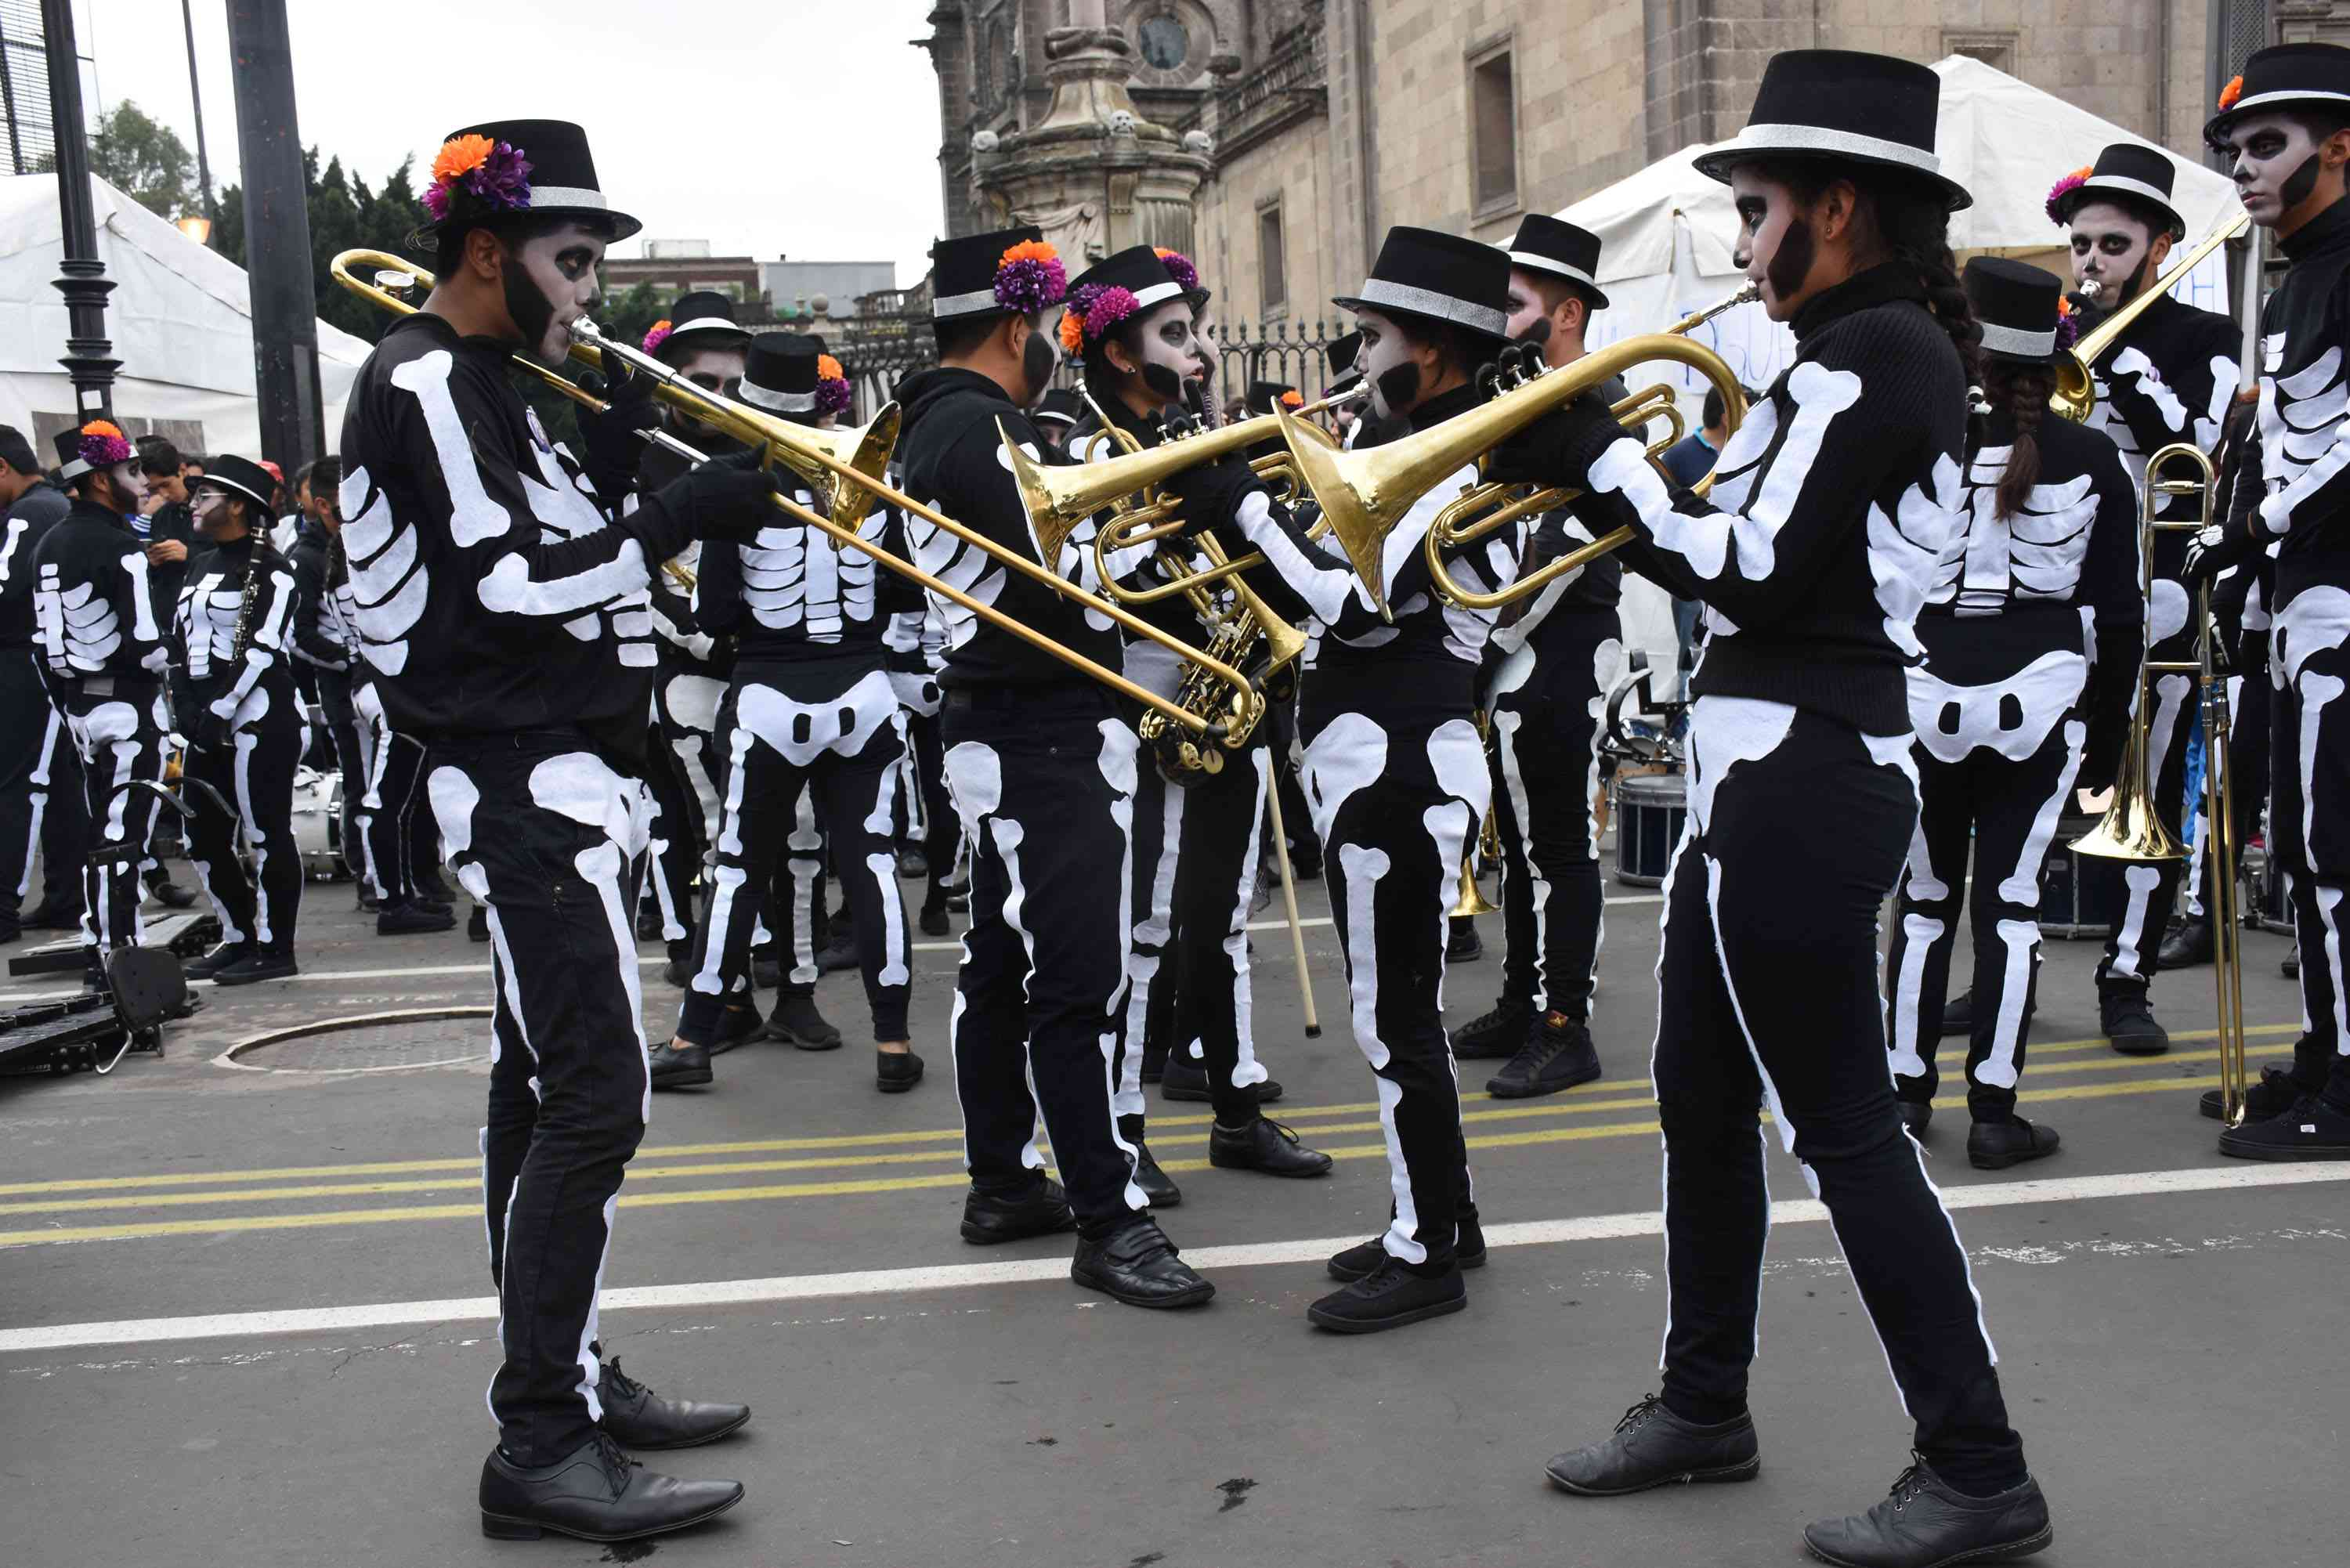 A skeleton band performs in the Day of the Dead Parade in Mexico City